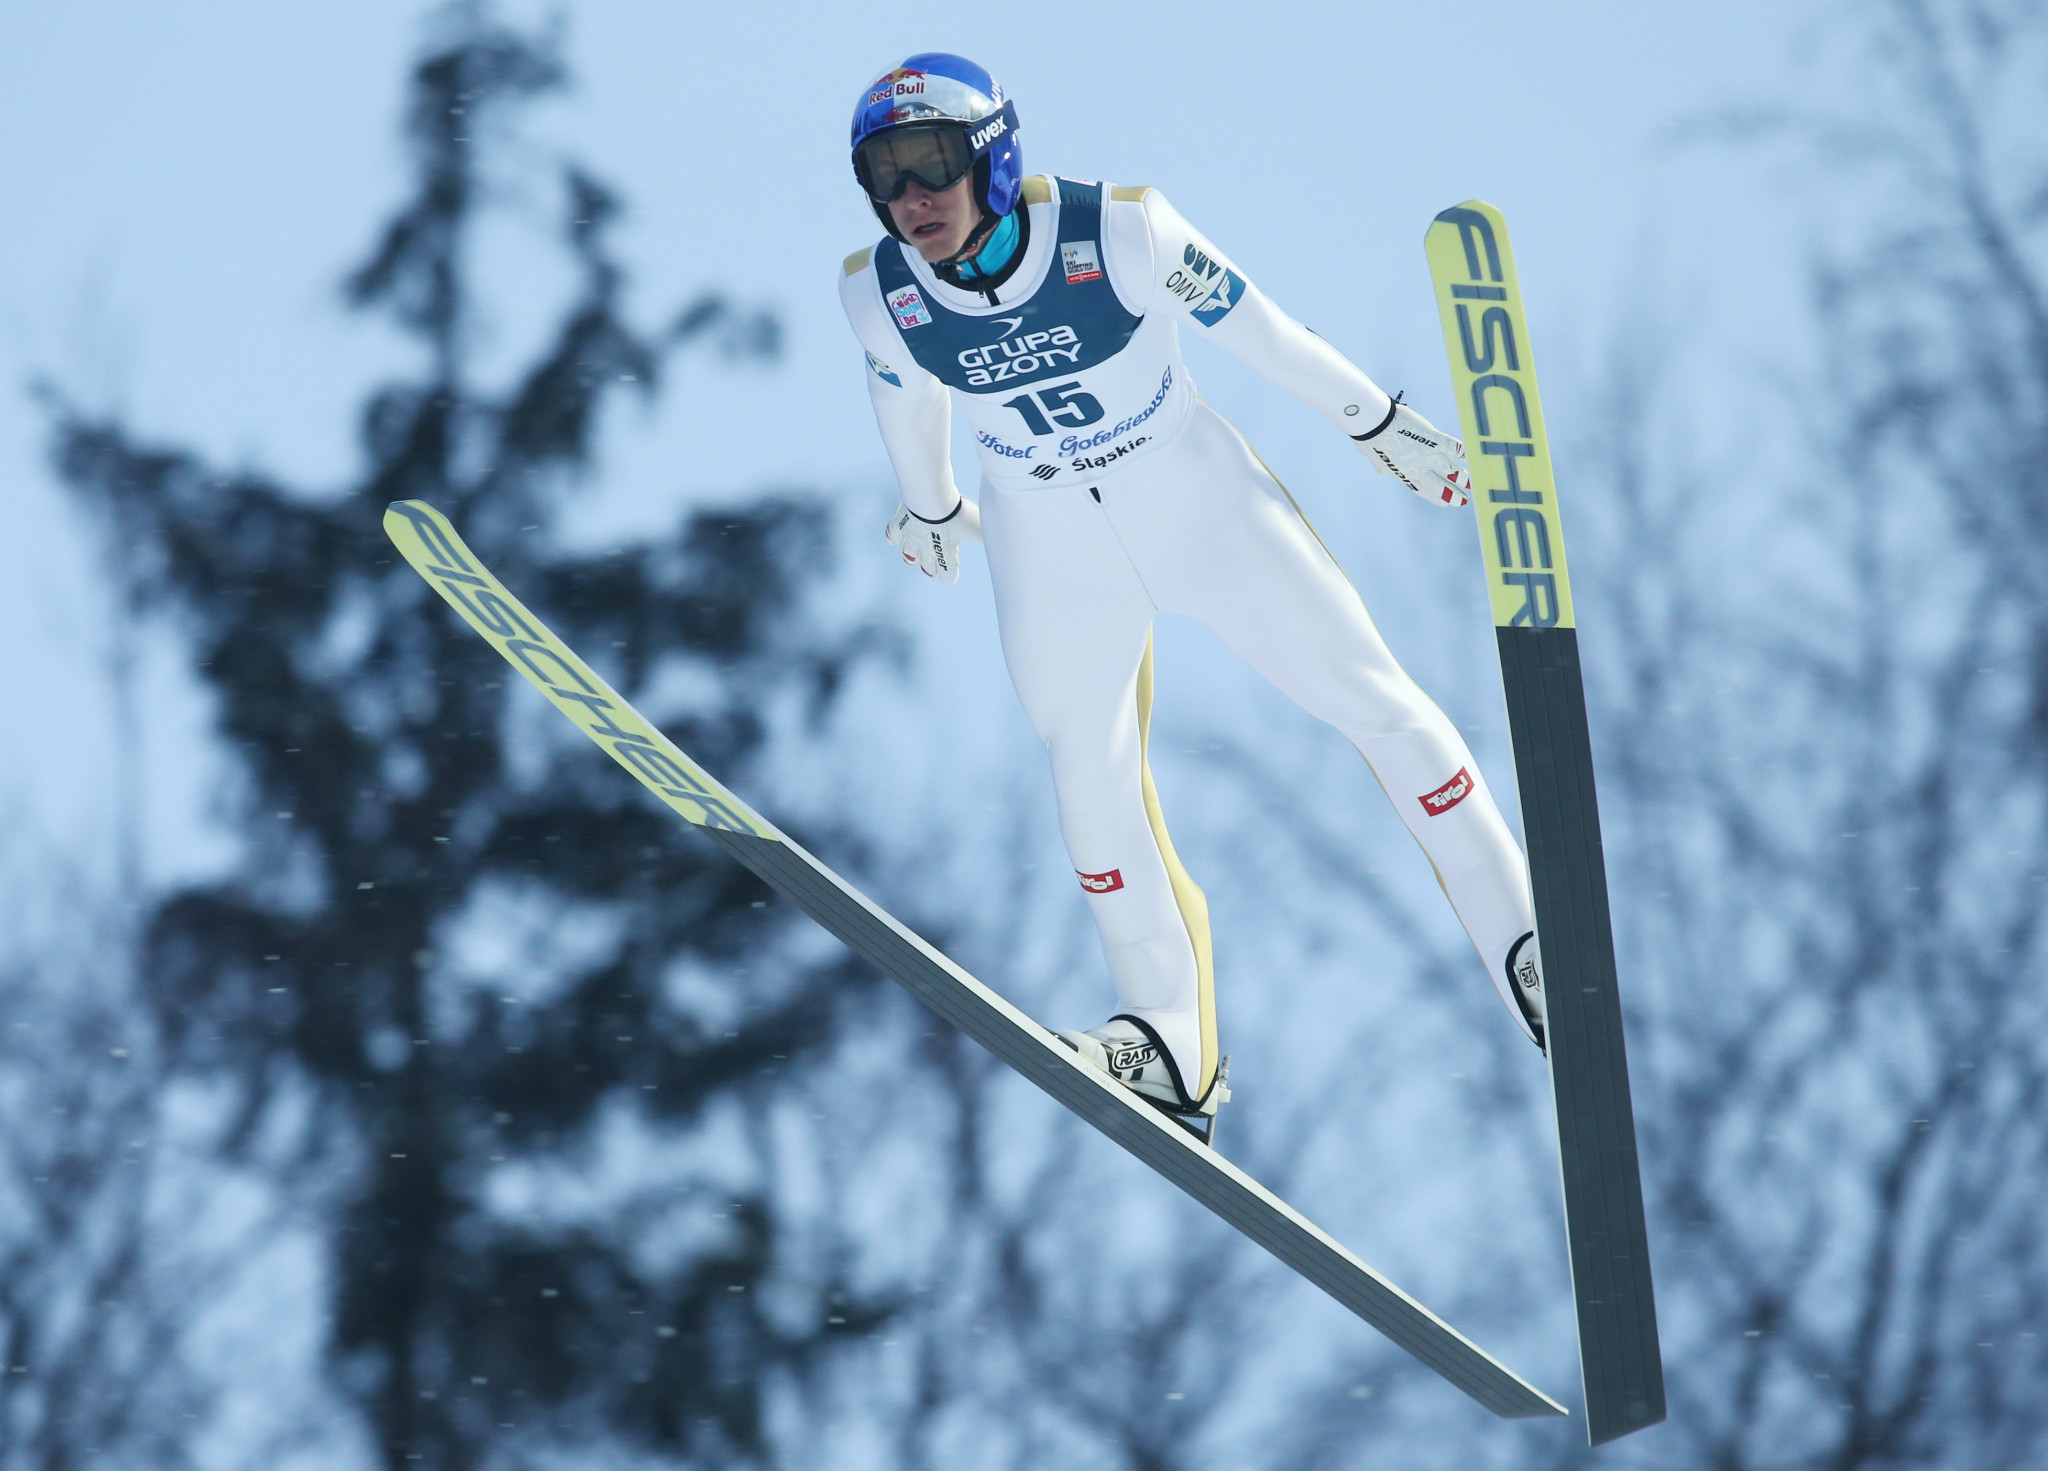 The ski jumping World Cup season will begin in Wisla next month ©Getty Images